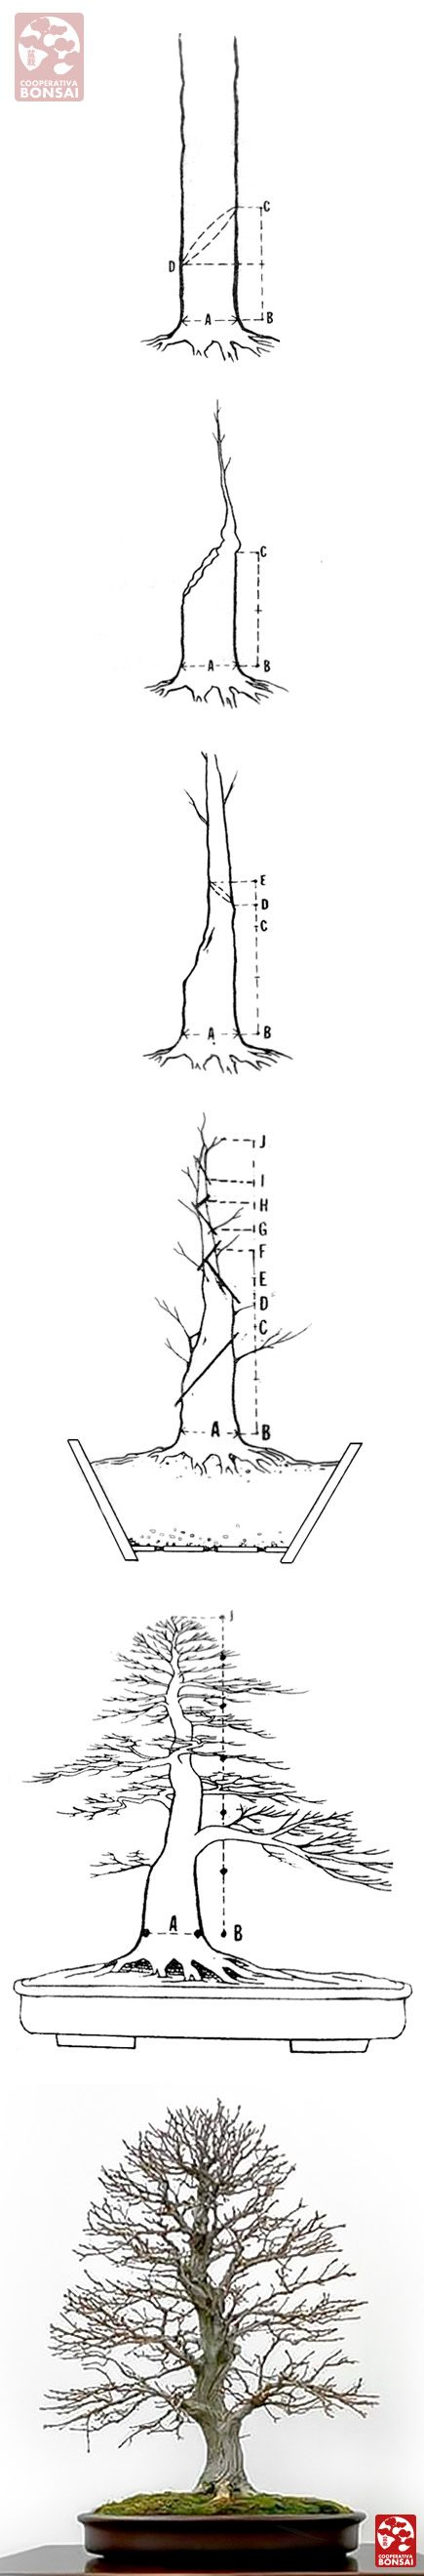 Radical pruning bonsai guide More Pins Like This At FOSTERGINGER @ Pinterest